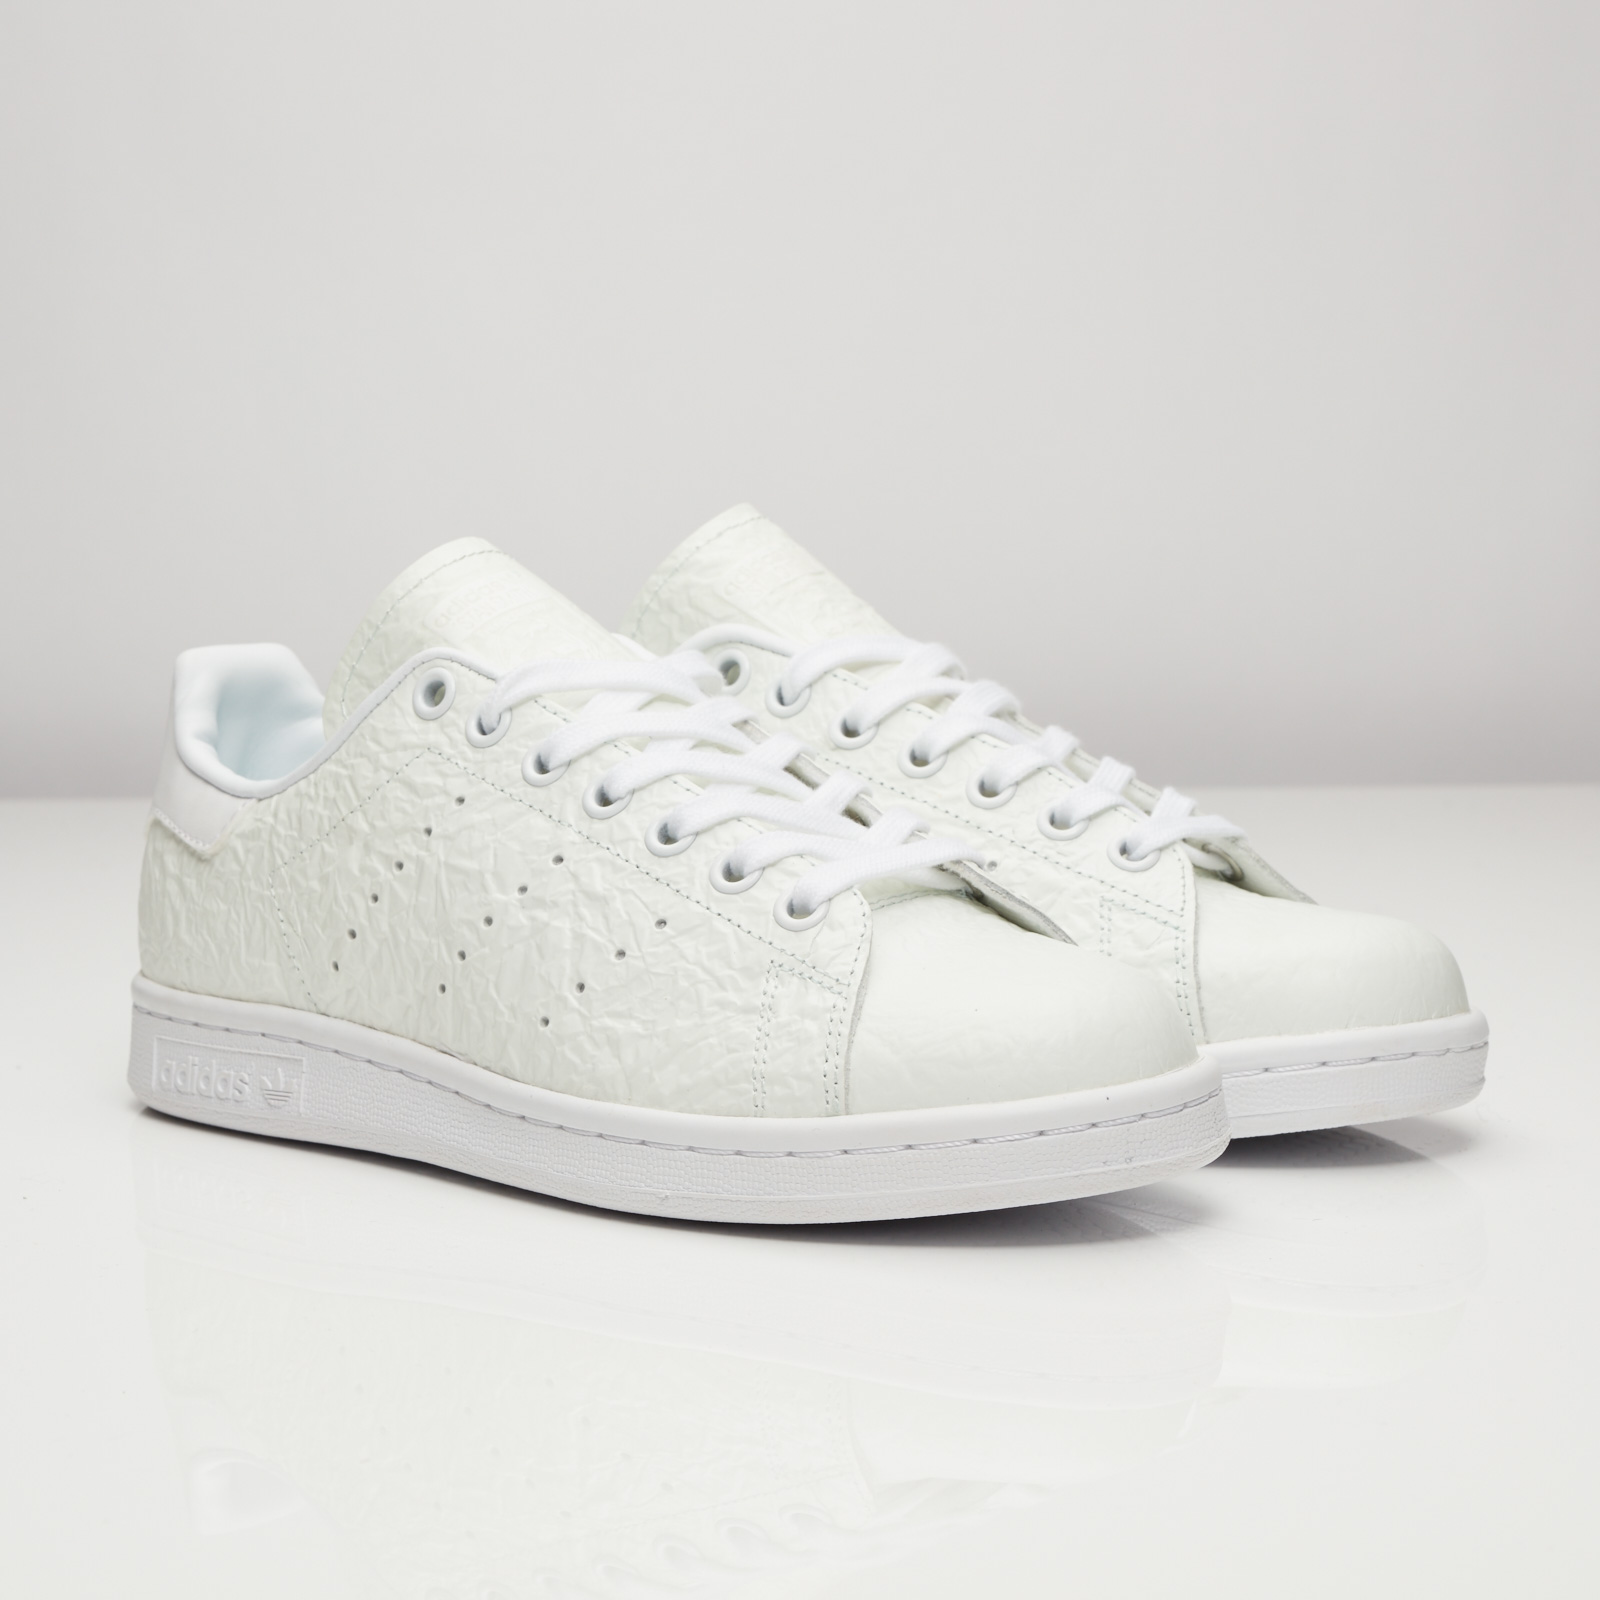 b343eddaef3ca adidas Stan Smith W - S76666 - Sneakersnstuff | sneakers ...